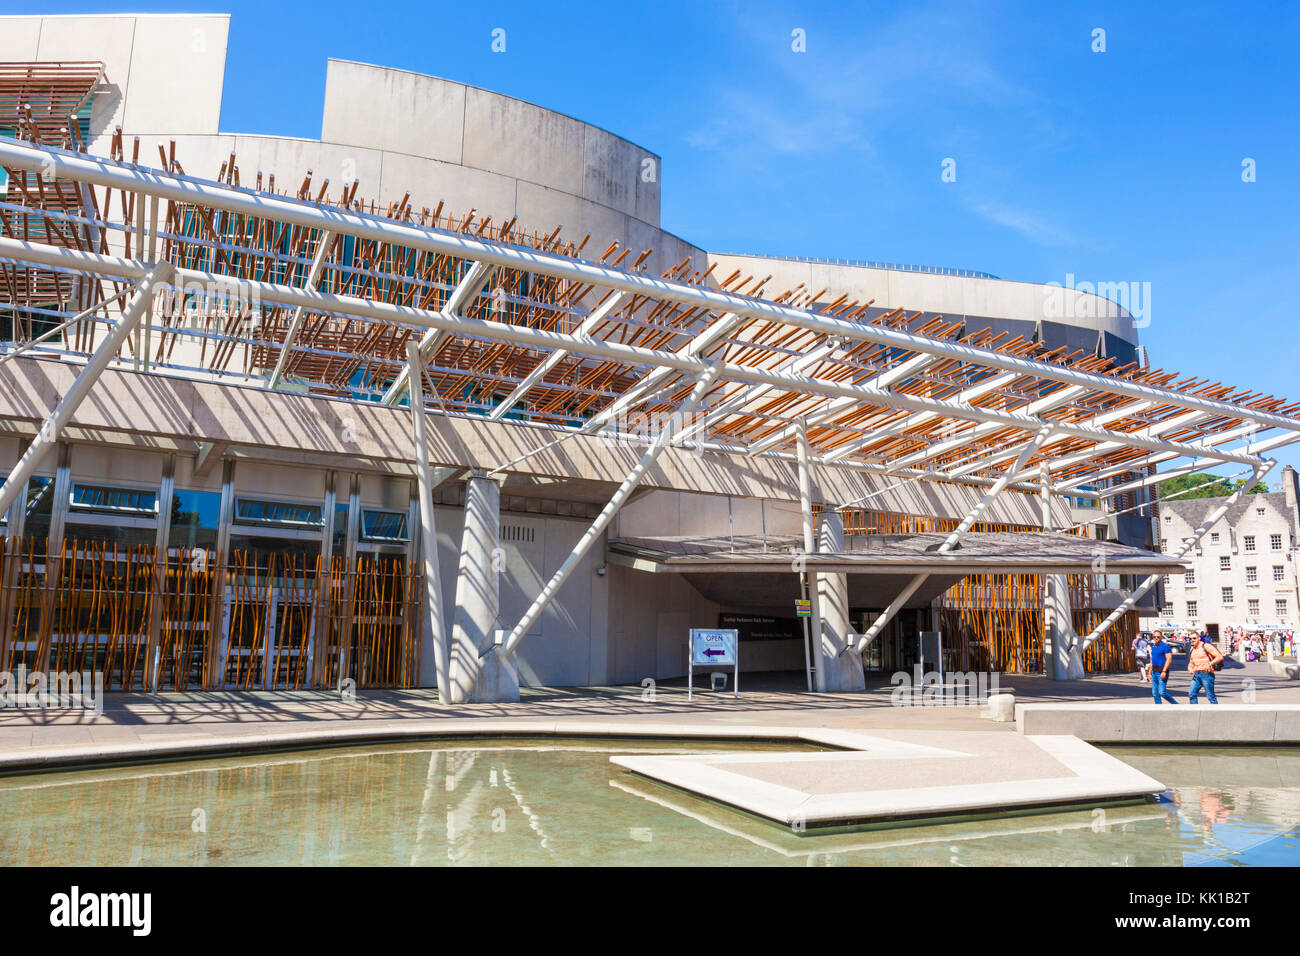 scottish parliament building Edinburgh scotland edinburgh scottish parliament building edinburgh holyrood edinburgh Stock Photo